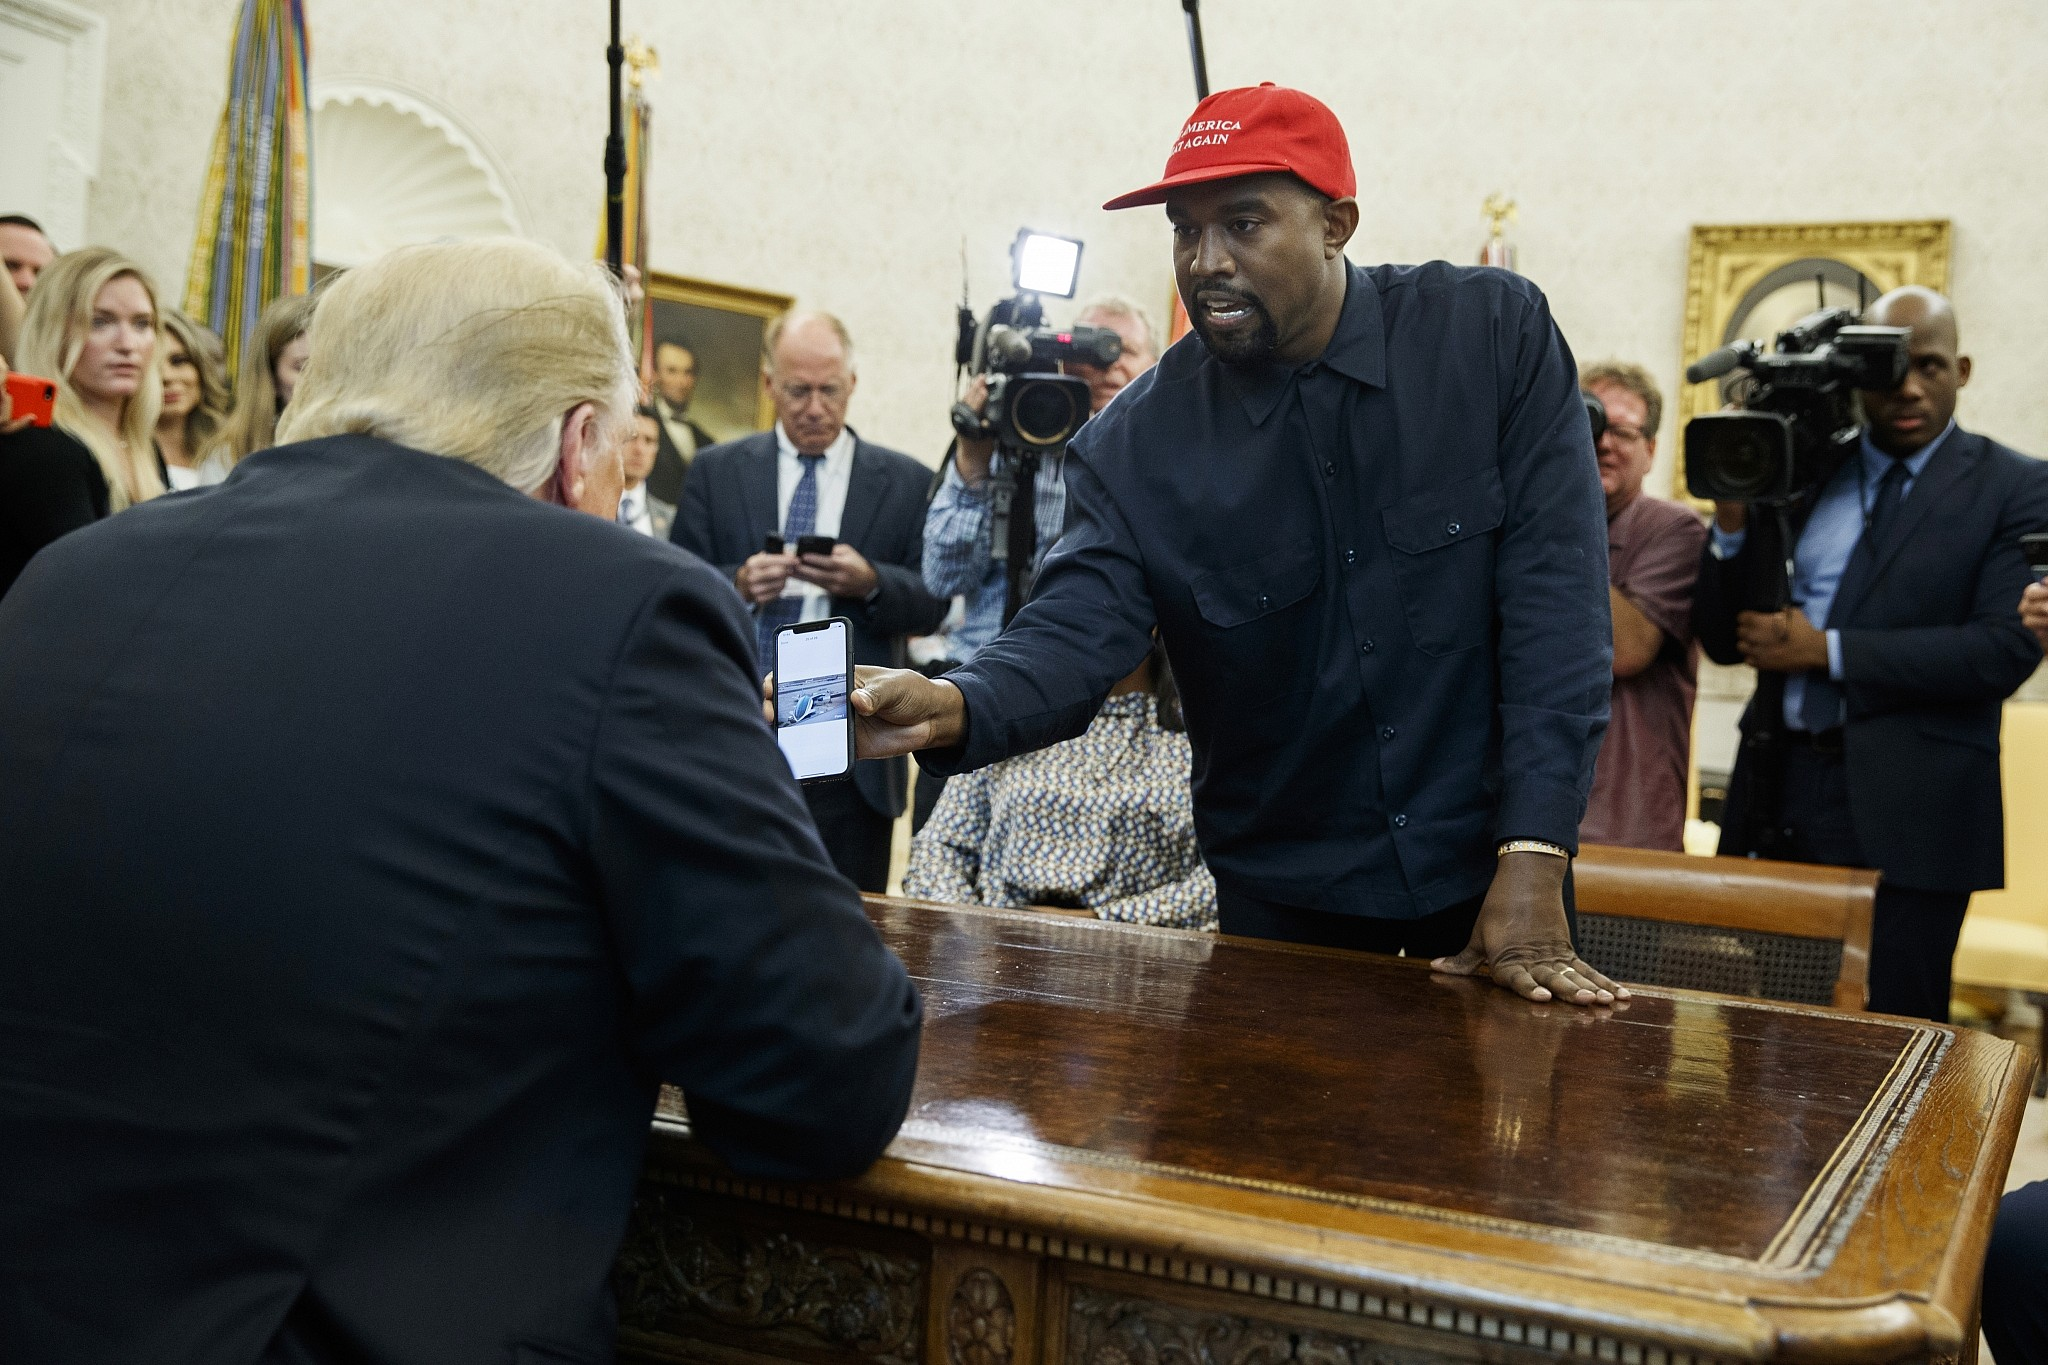 Kanye West returns to social media with 10-minute 'mind control' rant